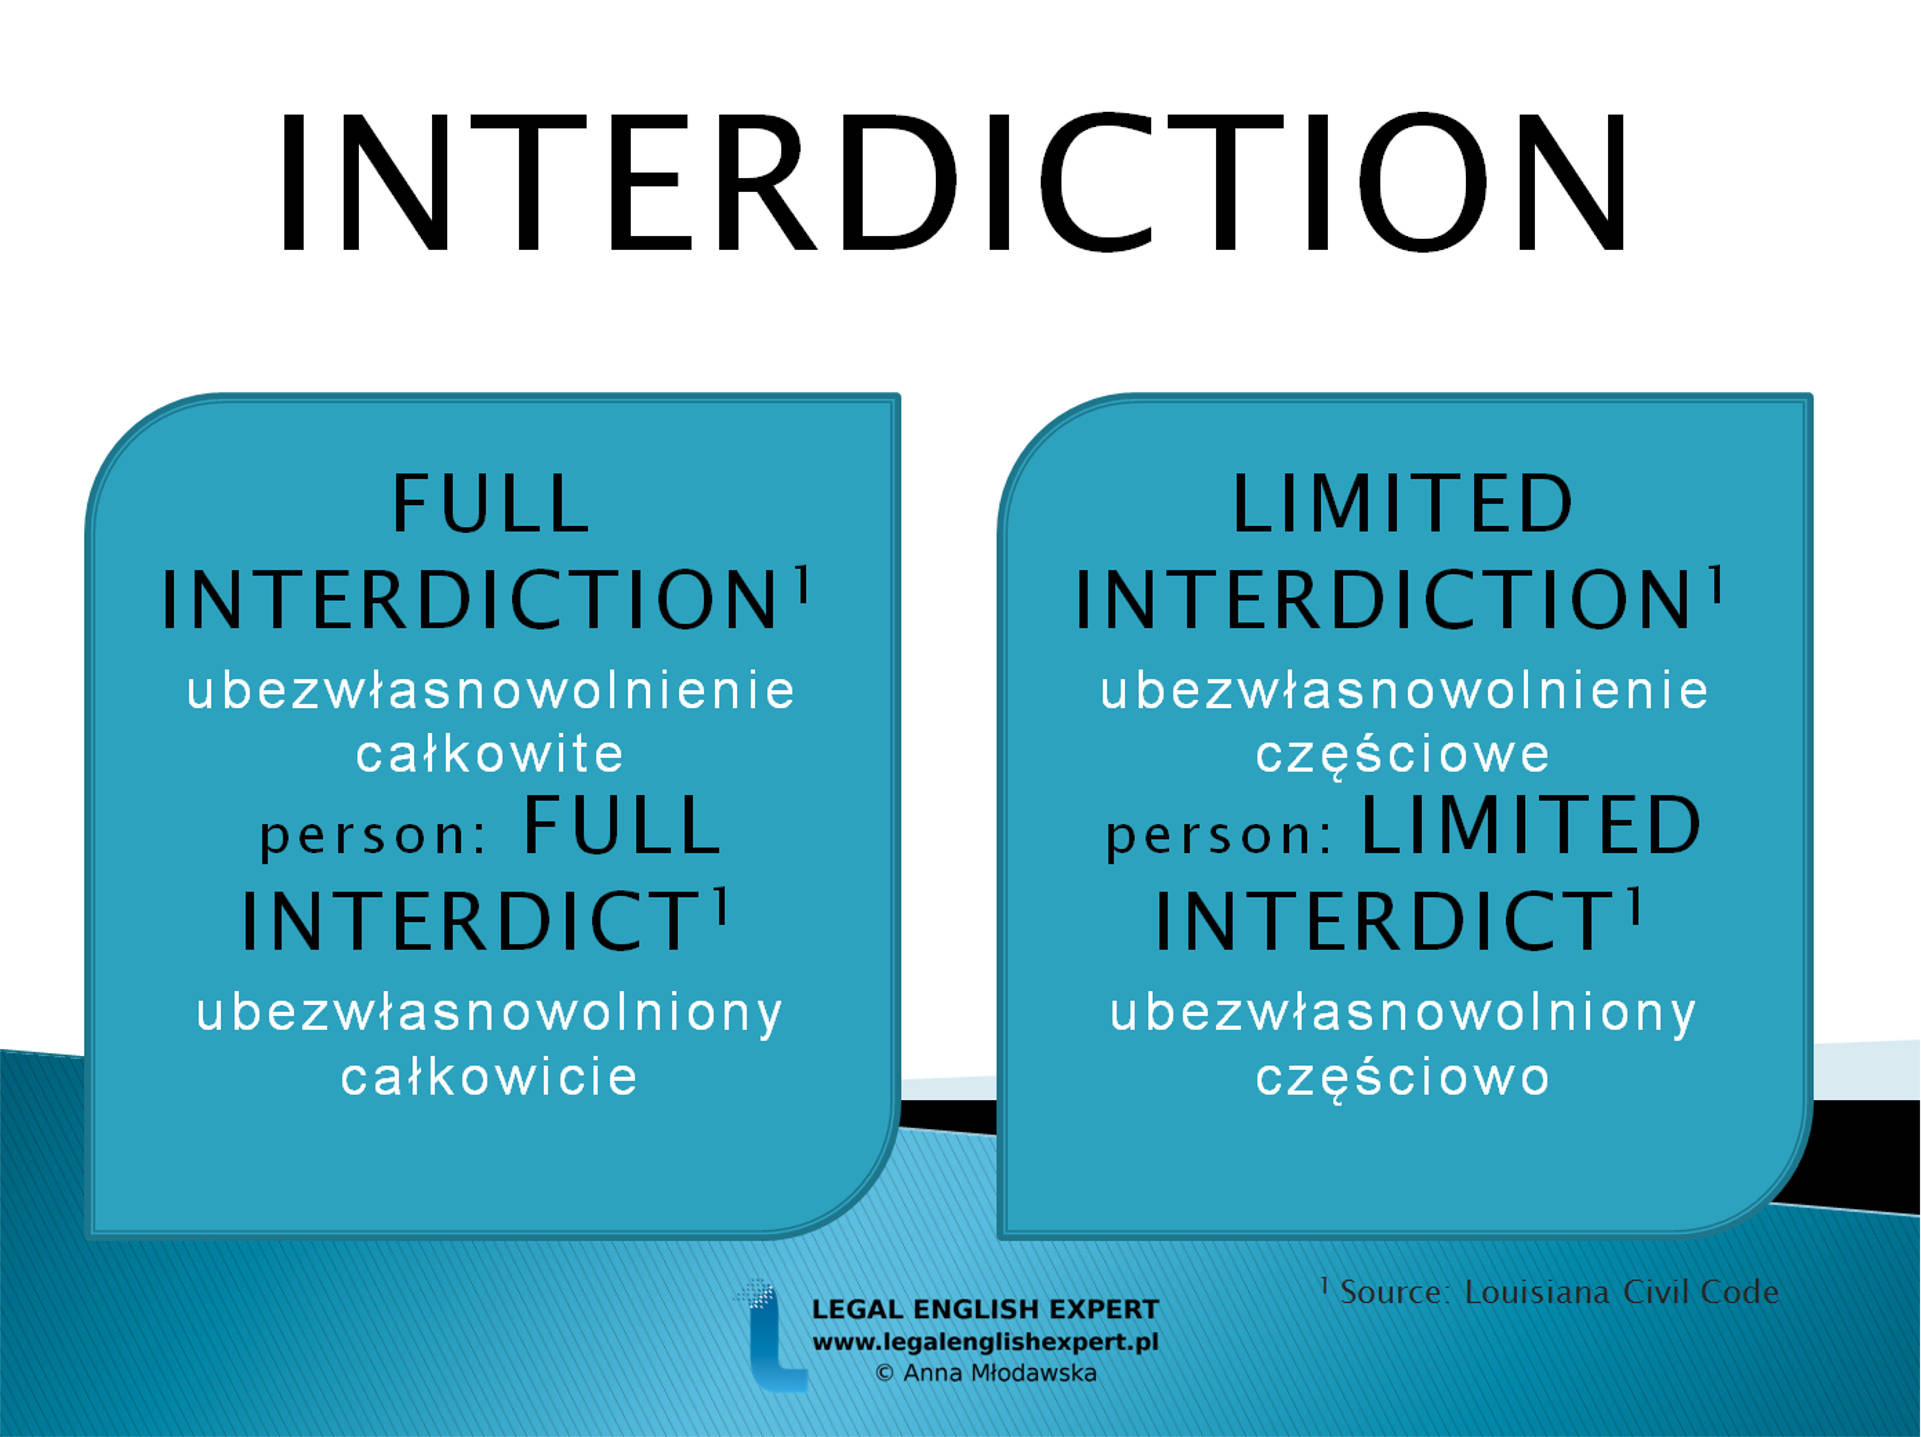 52 - Interdiction